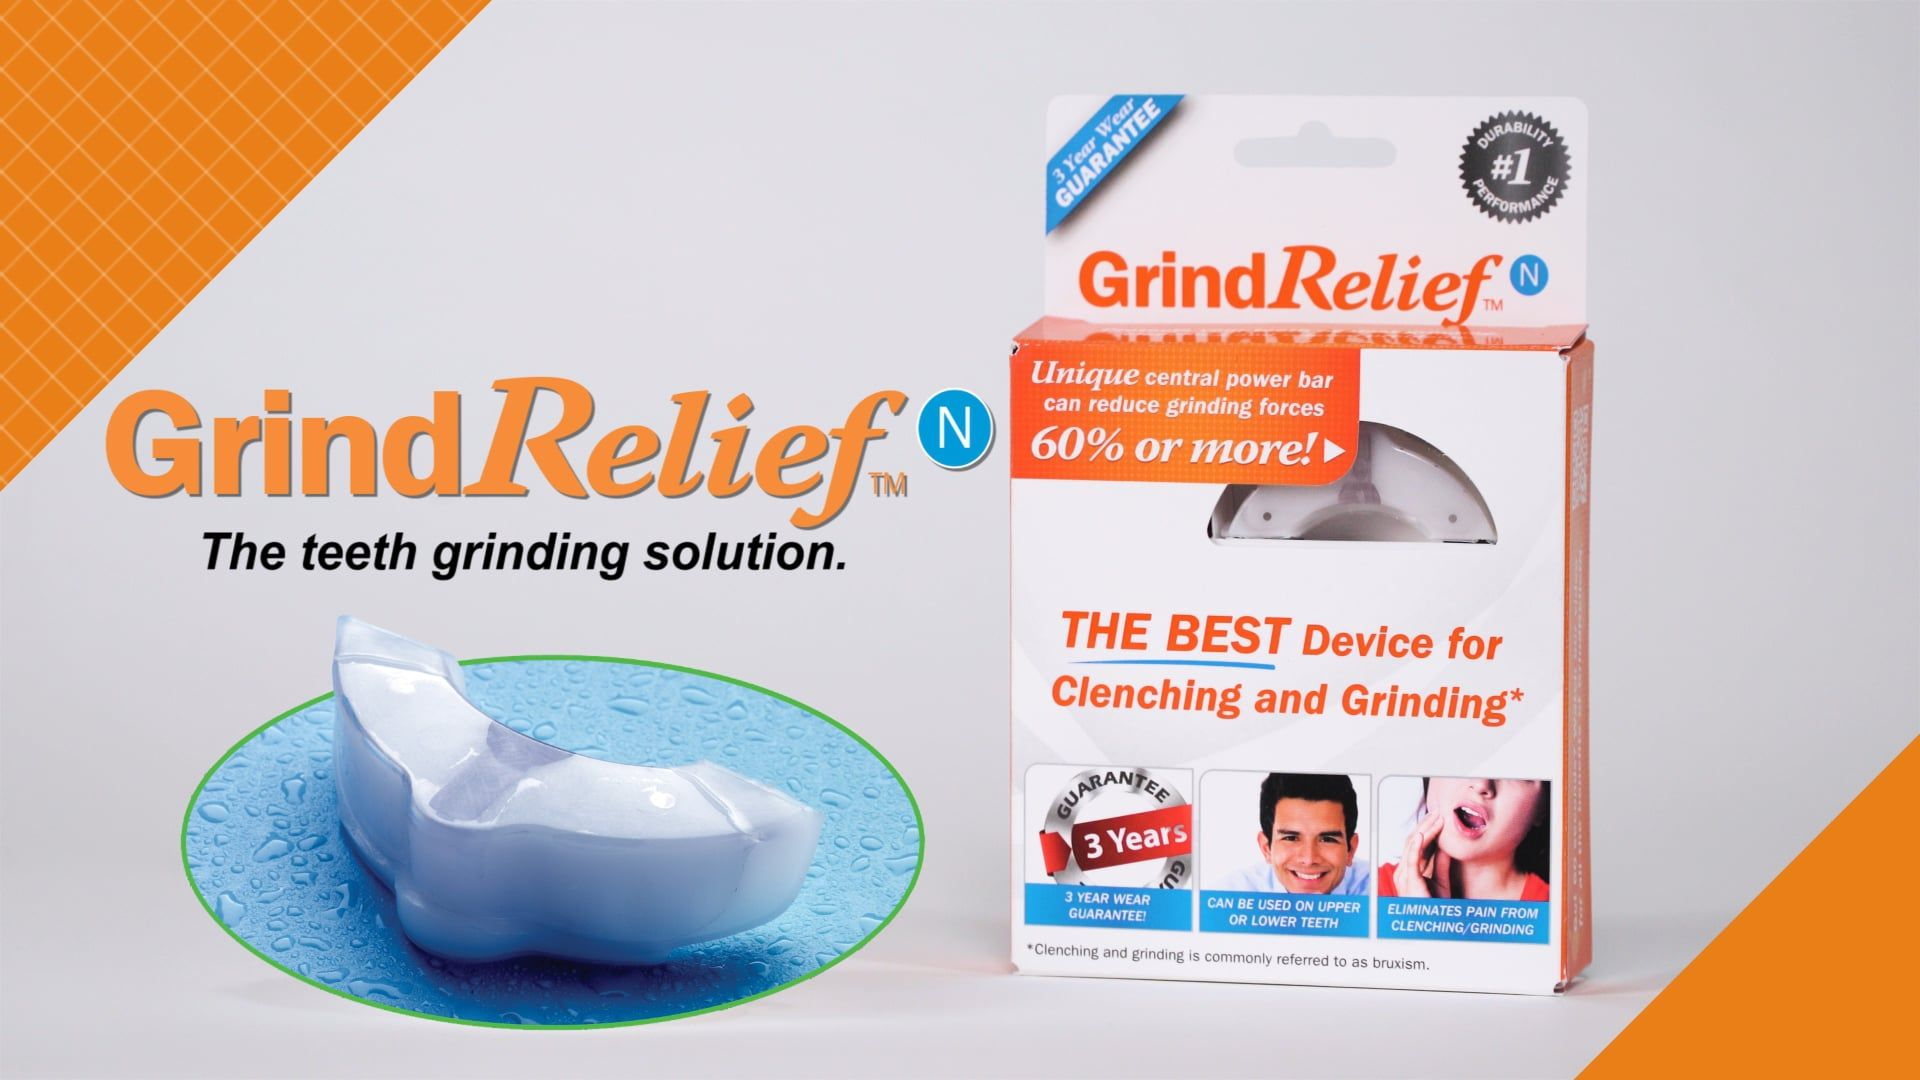 GRN_PROMO Mouth guard, Grinding teeth, Clenched